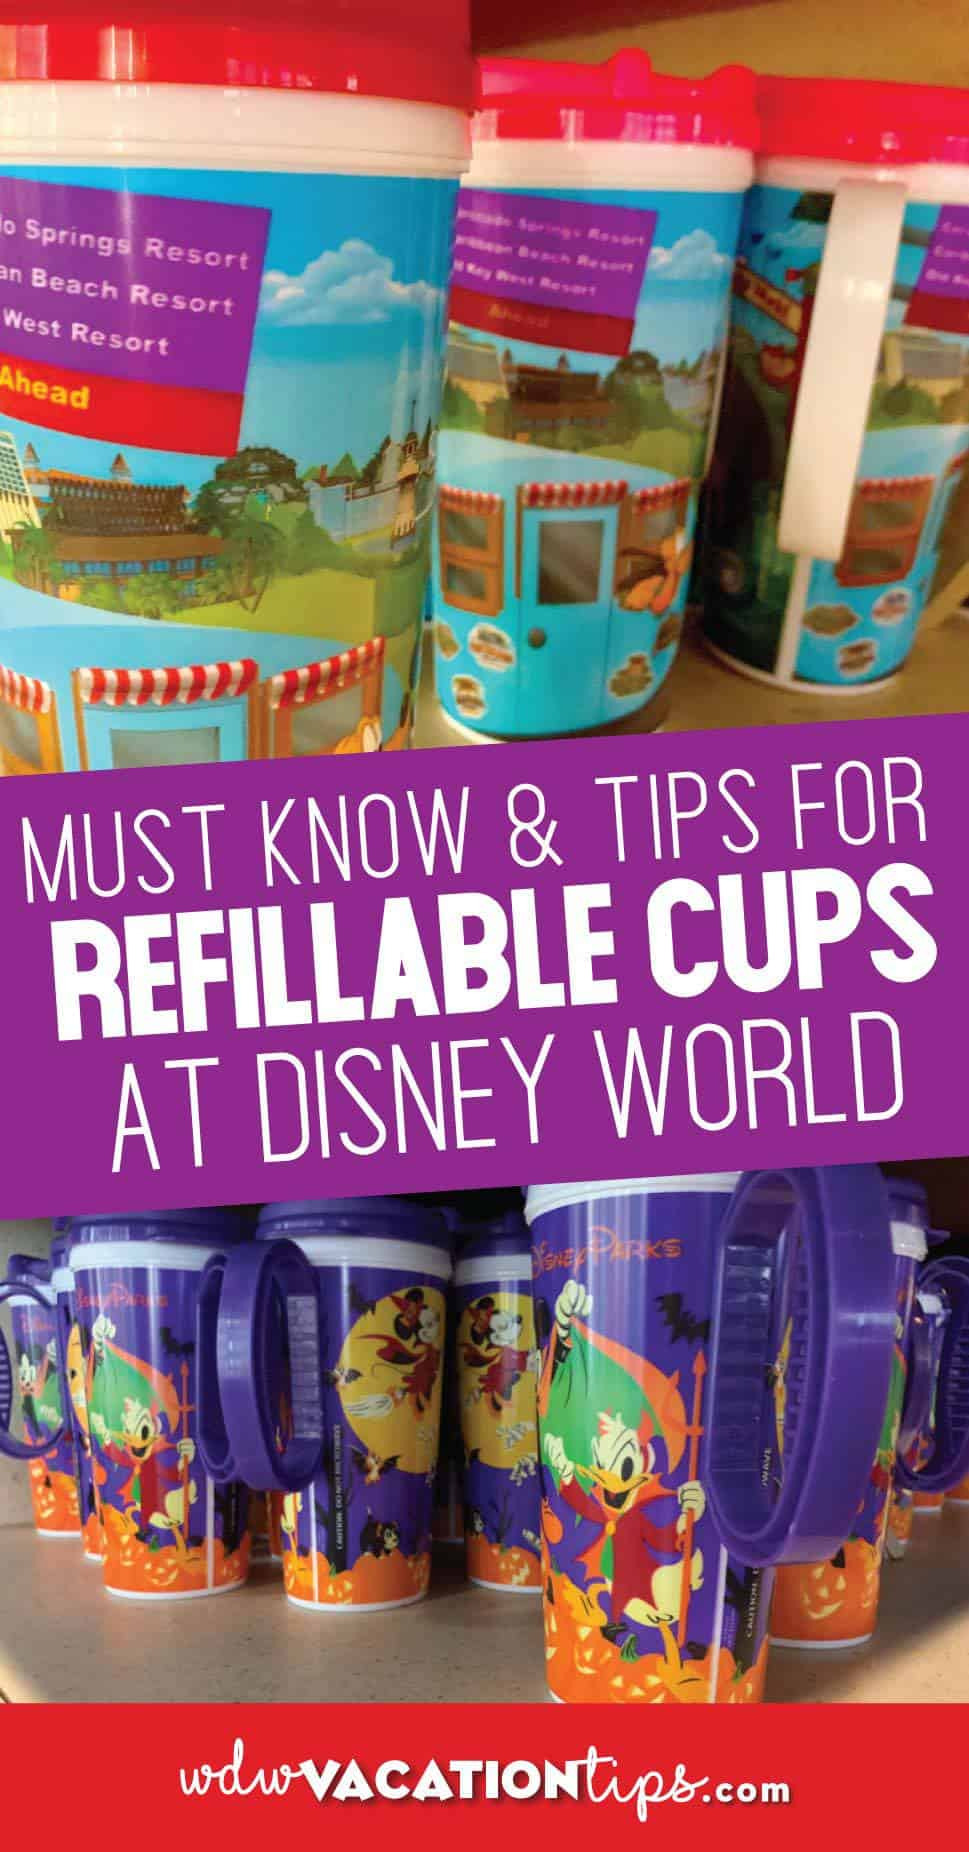 Disney World Refillable Cups